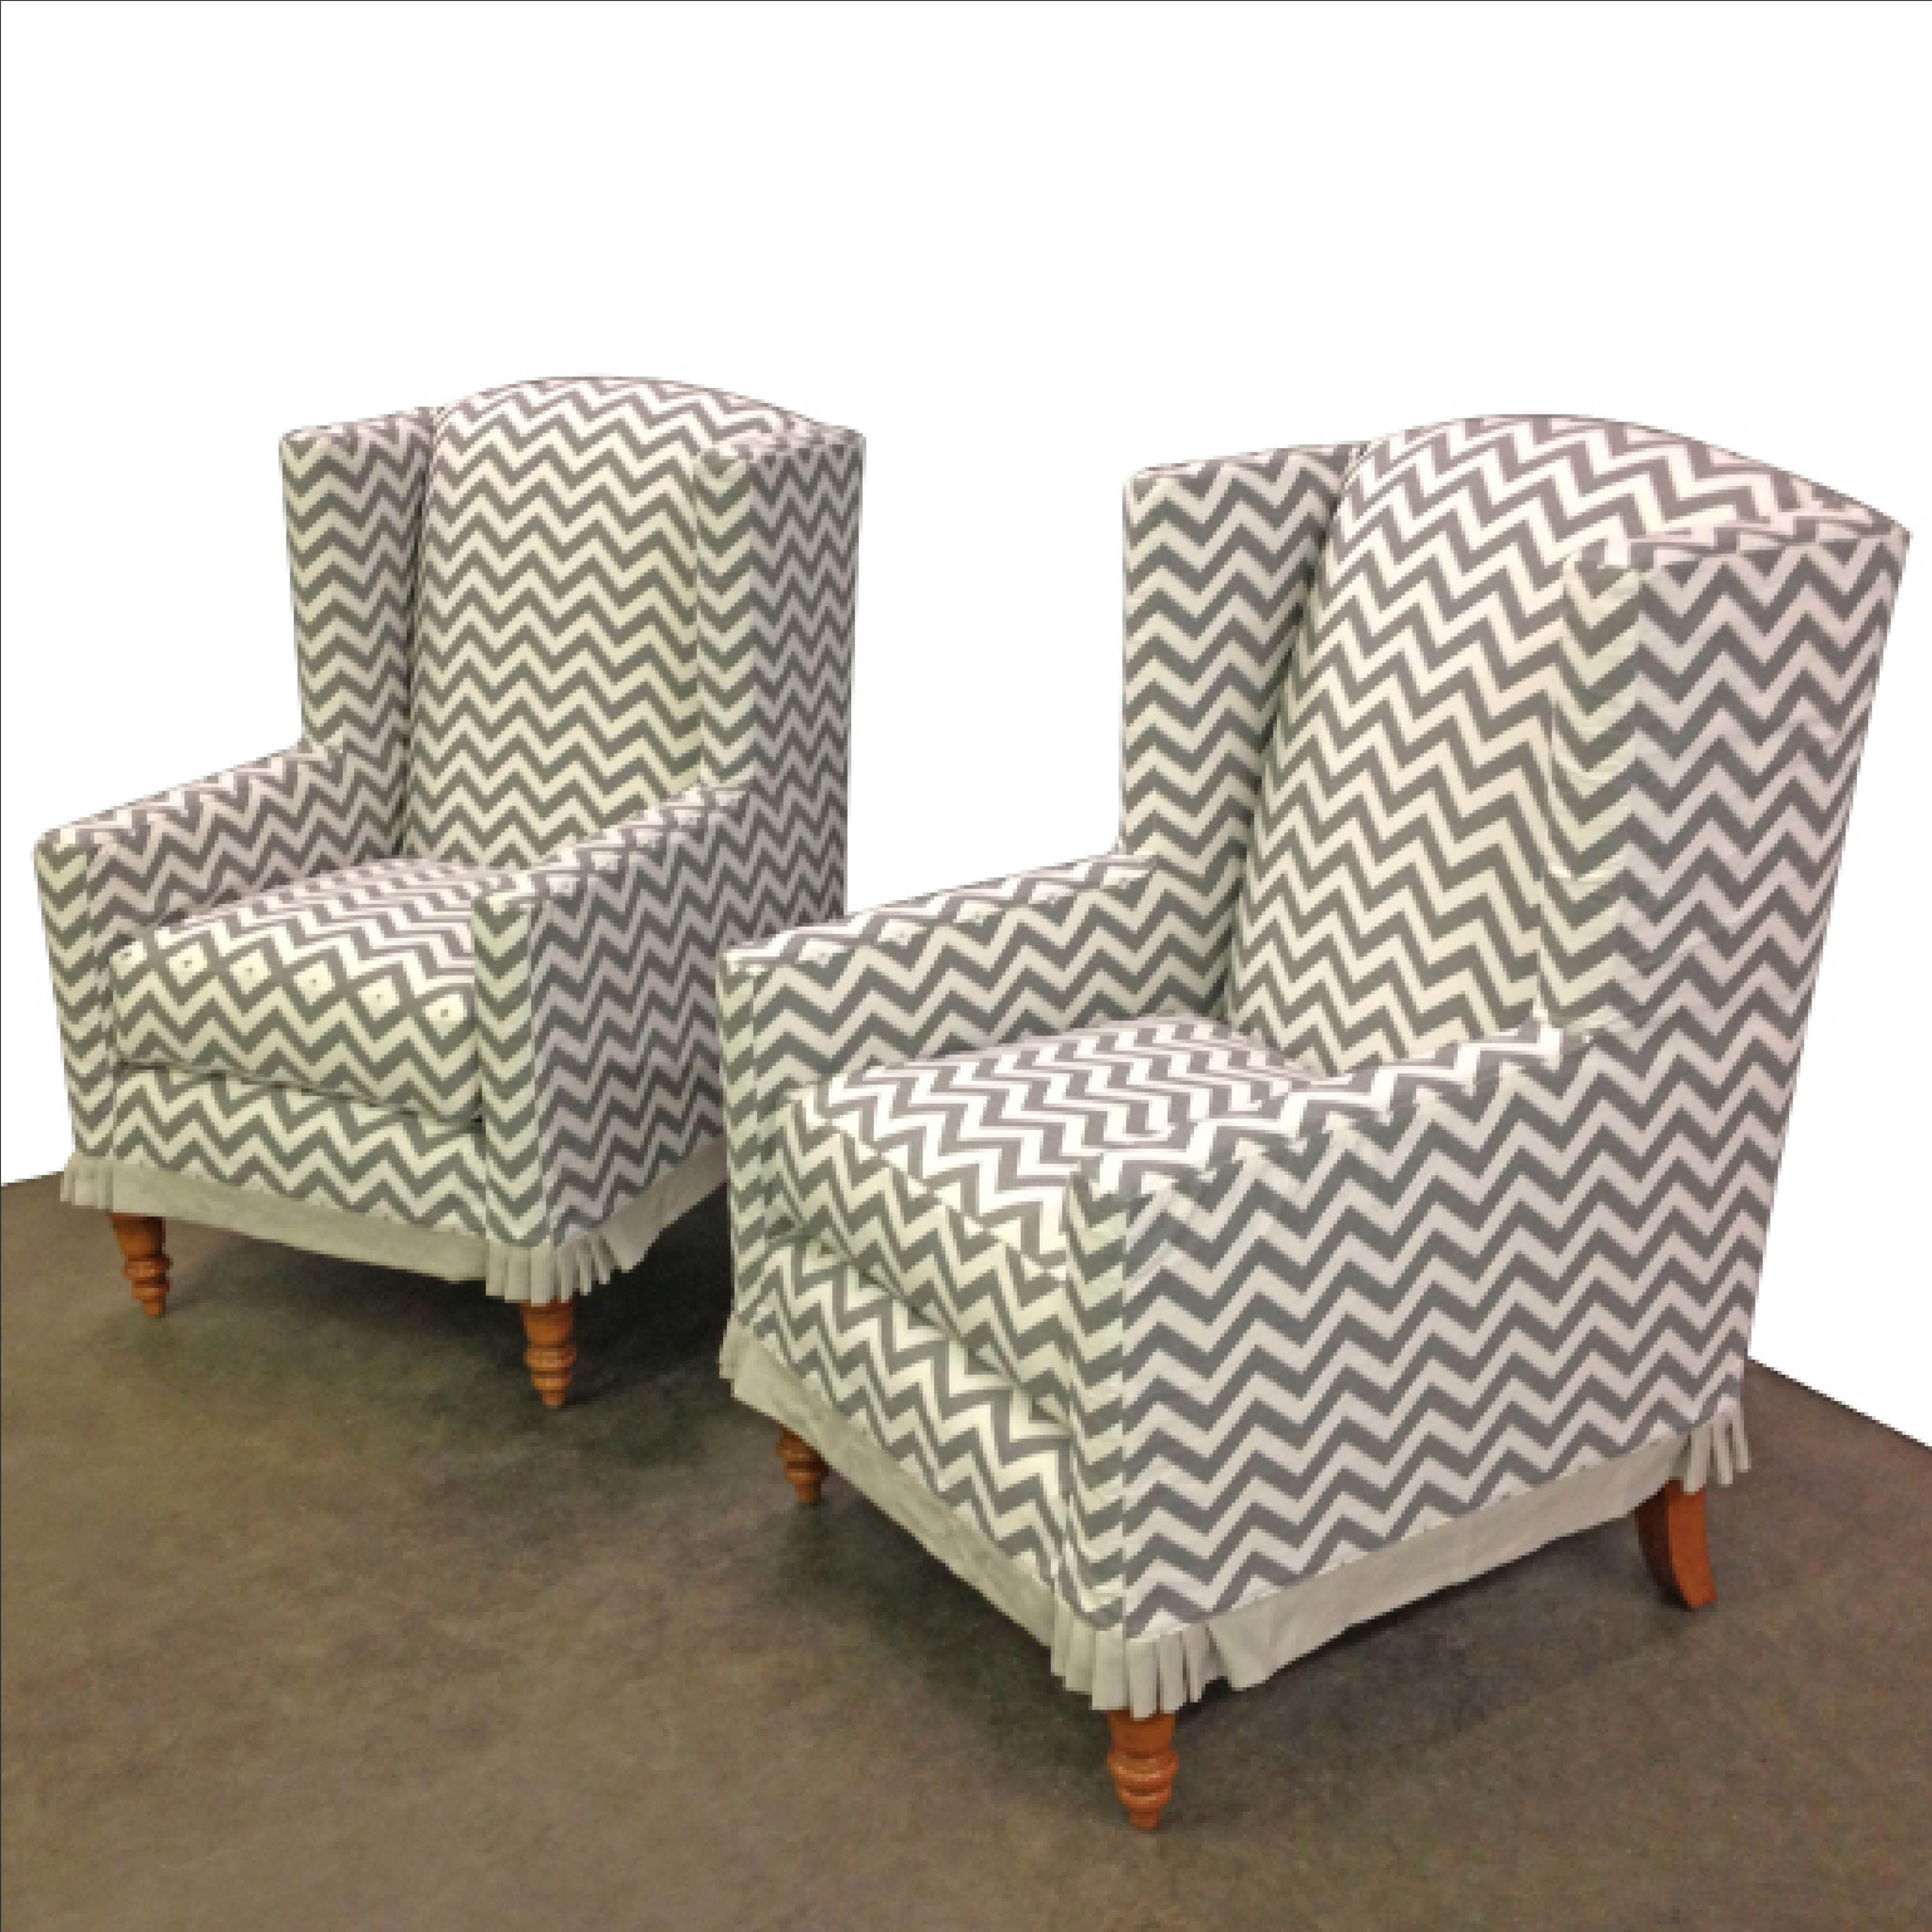 Chevron wing chairs - Modern Wingback Chairs We Love The Traditional Legs Paired With A Contemporary Chevron And How